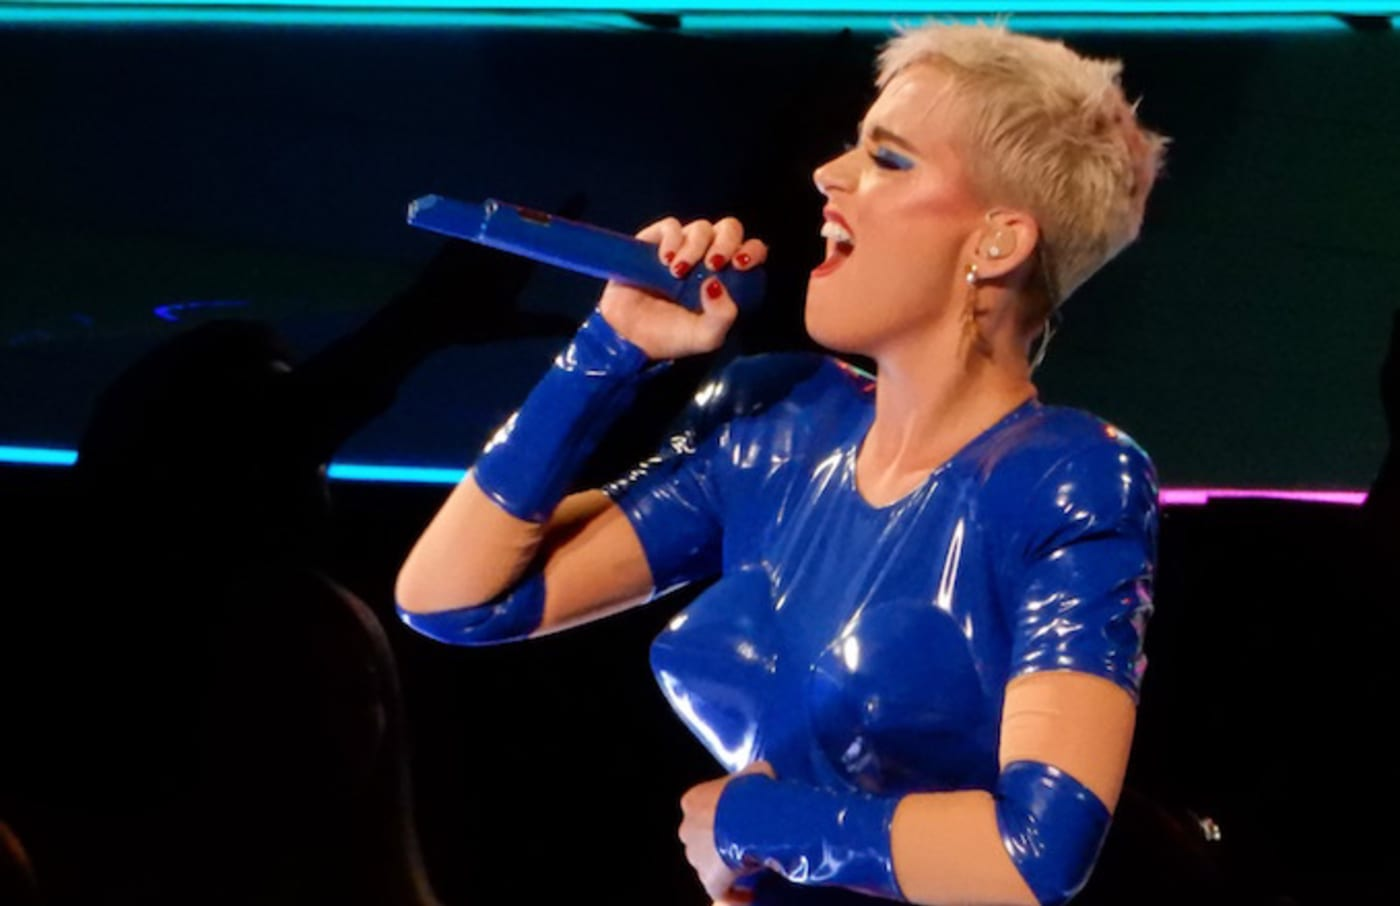 Katy Perry at Madison Square Garden